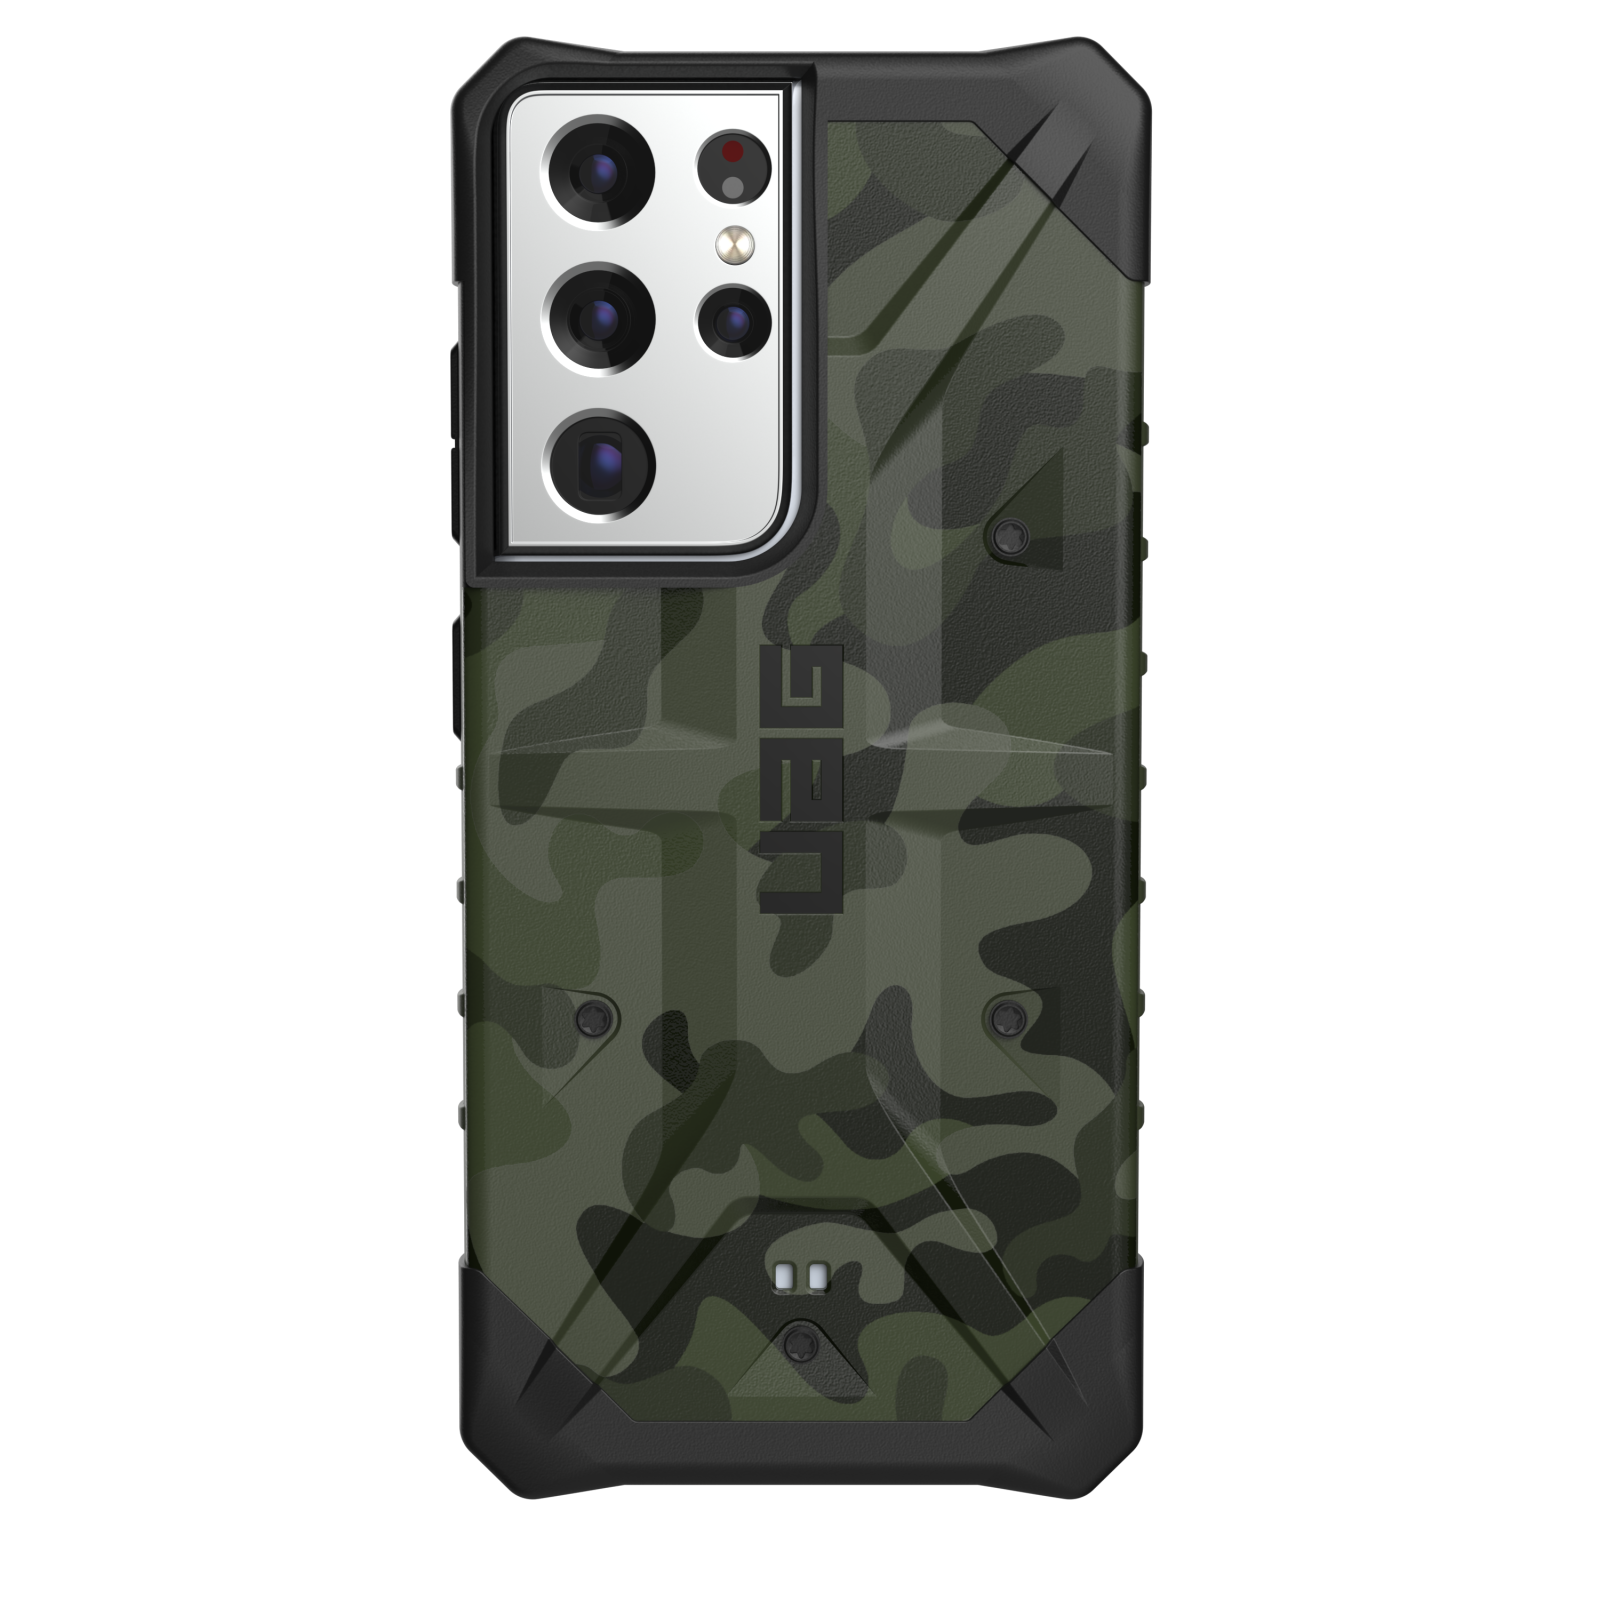 ỐP LƯNG PATHFINDER SE CHO SAMSUNG GALAXY S21 ULTRA 5G [6.8-INCH] - Forest Camo